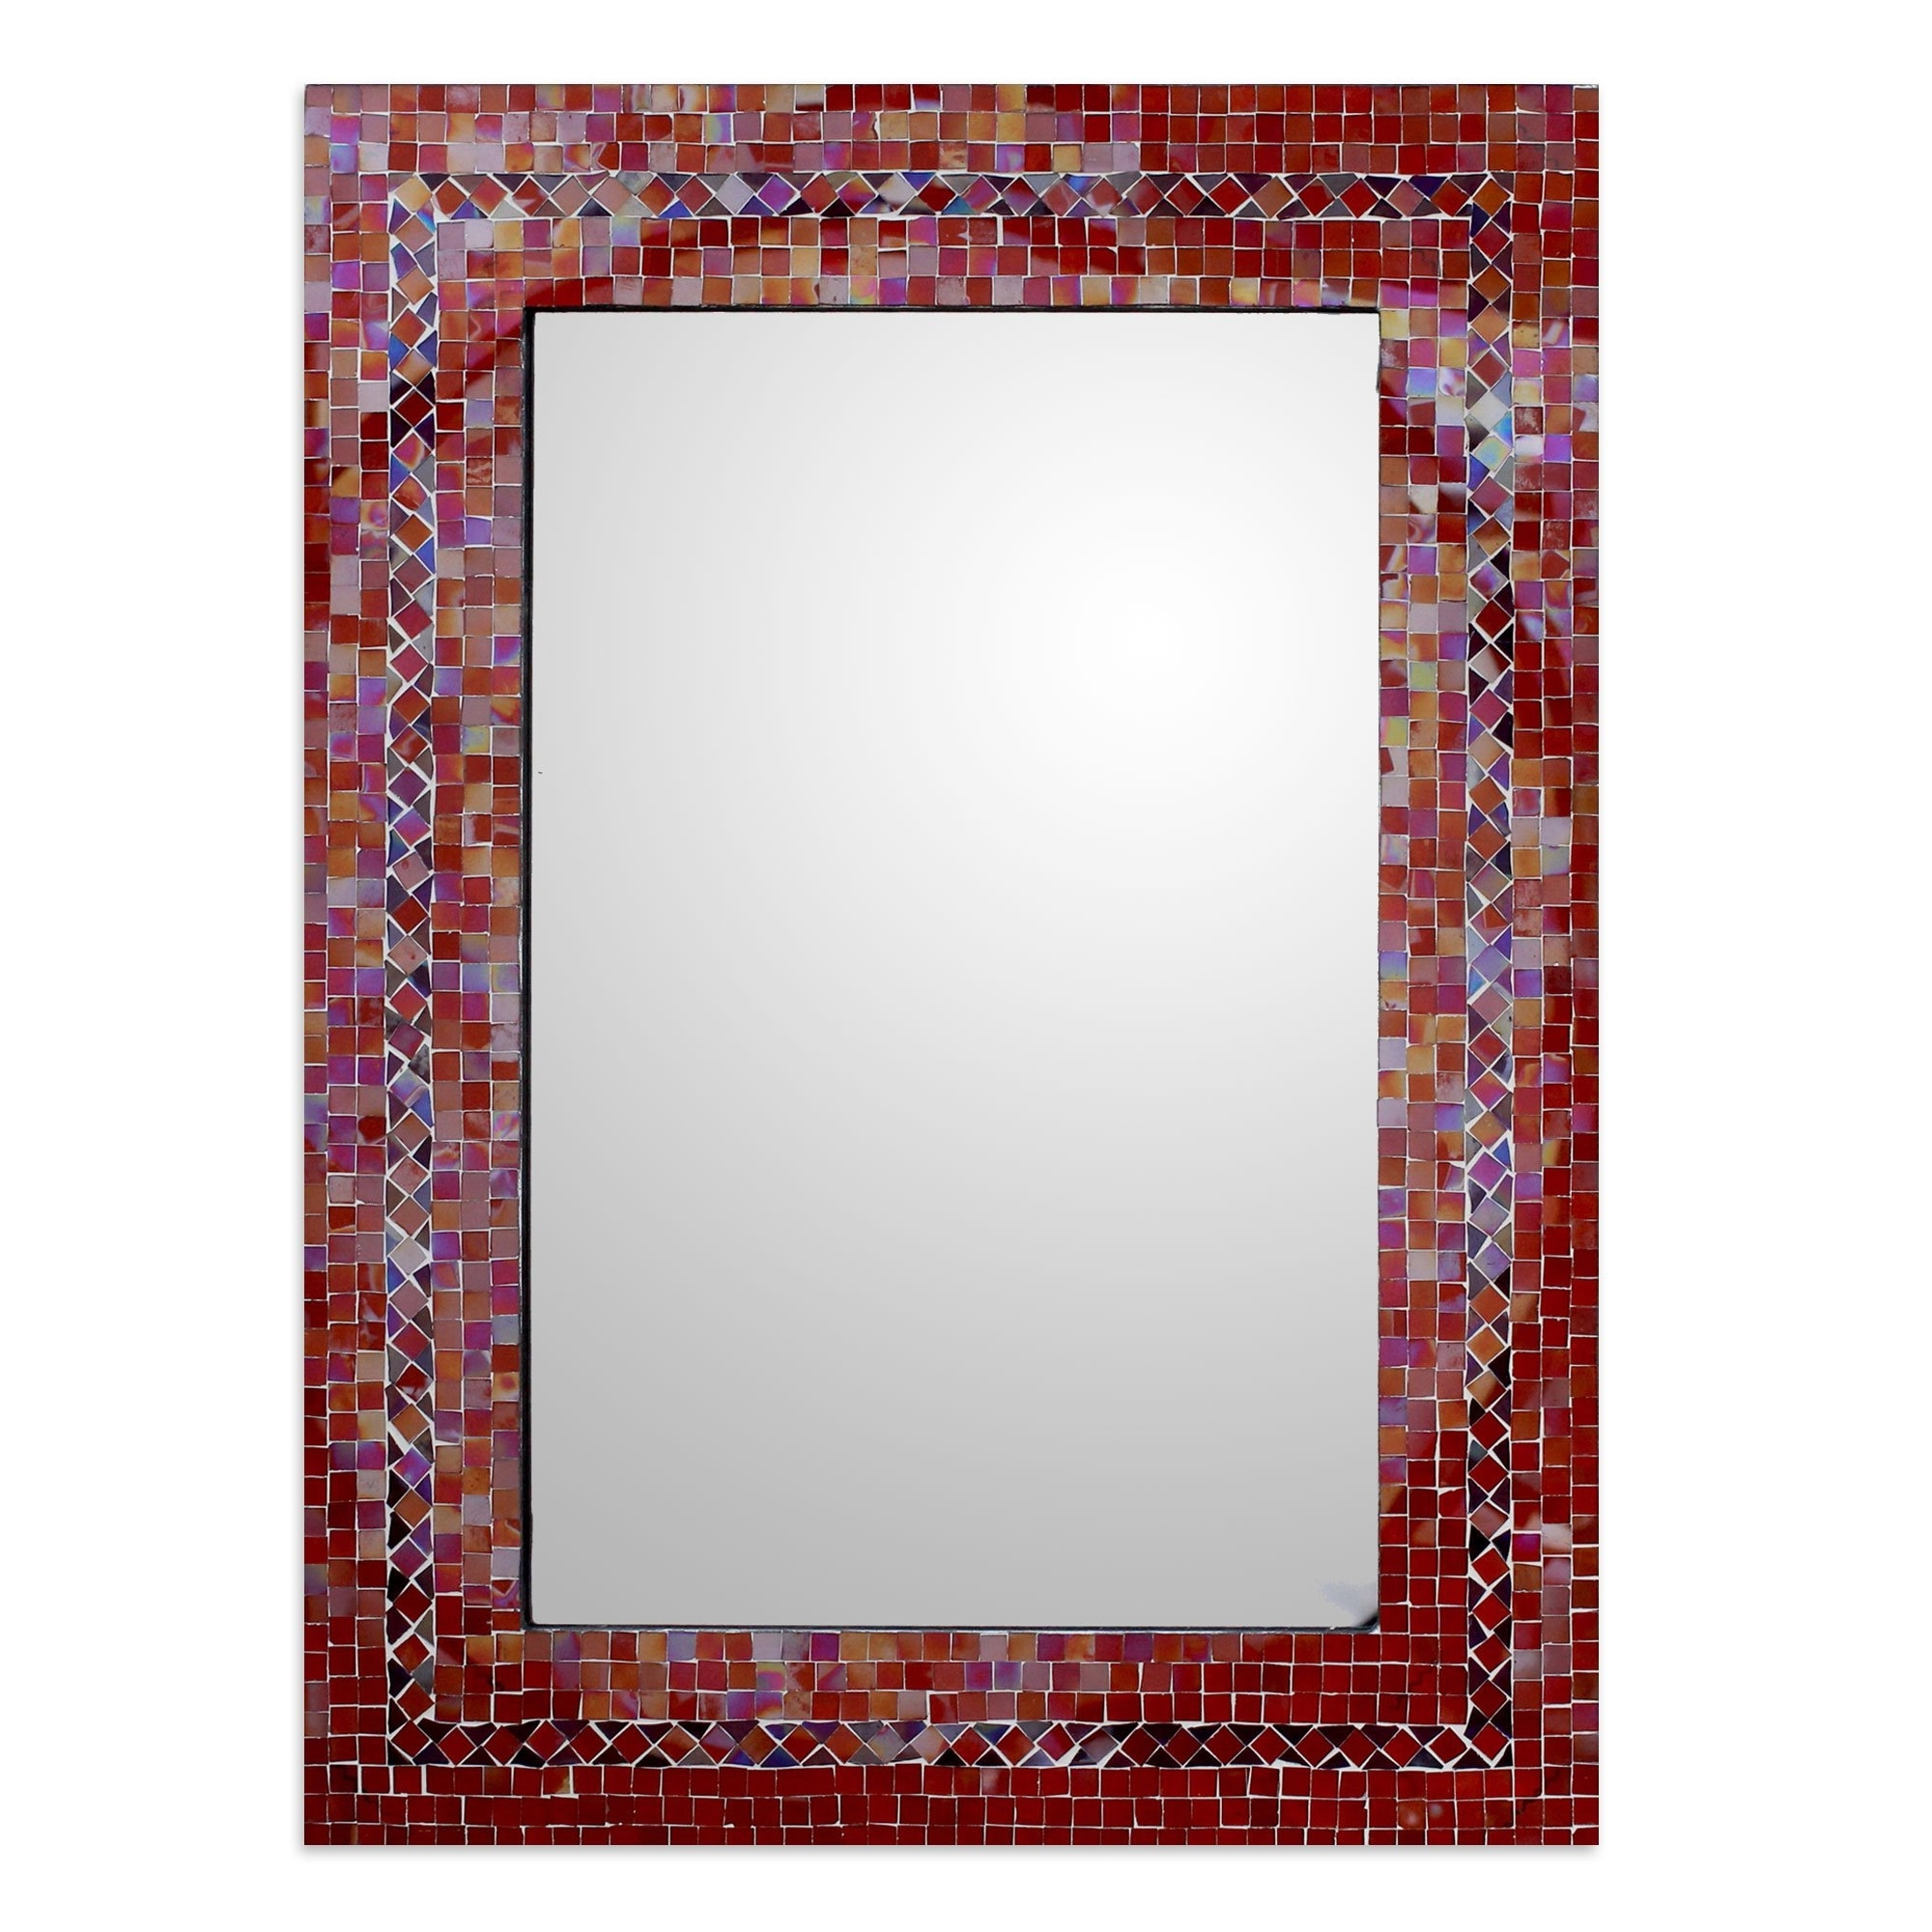 2017 Mirror Mosaic Wall Art: Amazon Intended For Mirror Mosaic Wall Art (Gallery 19 of 20)